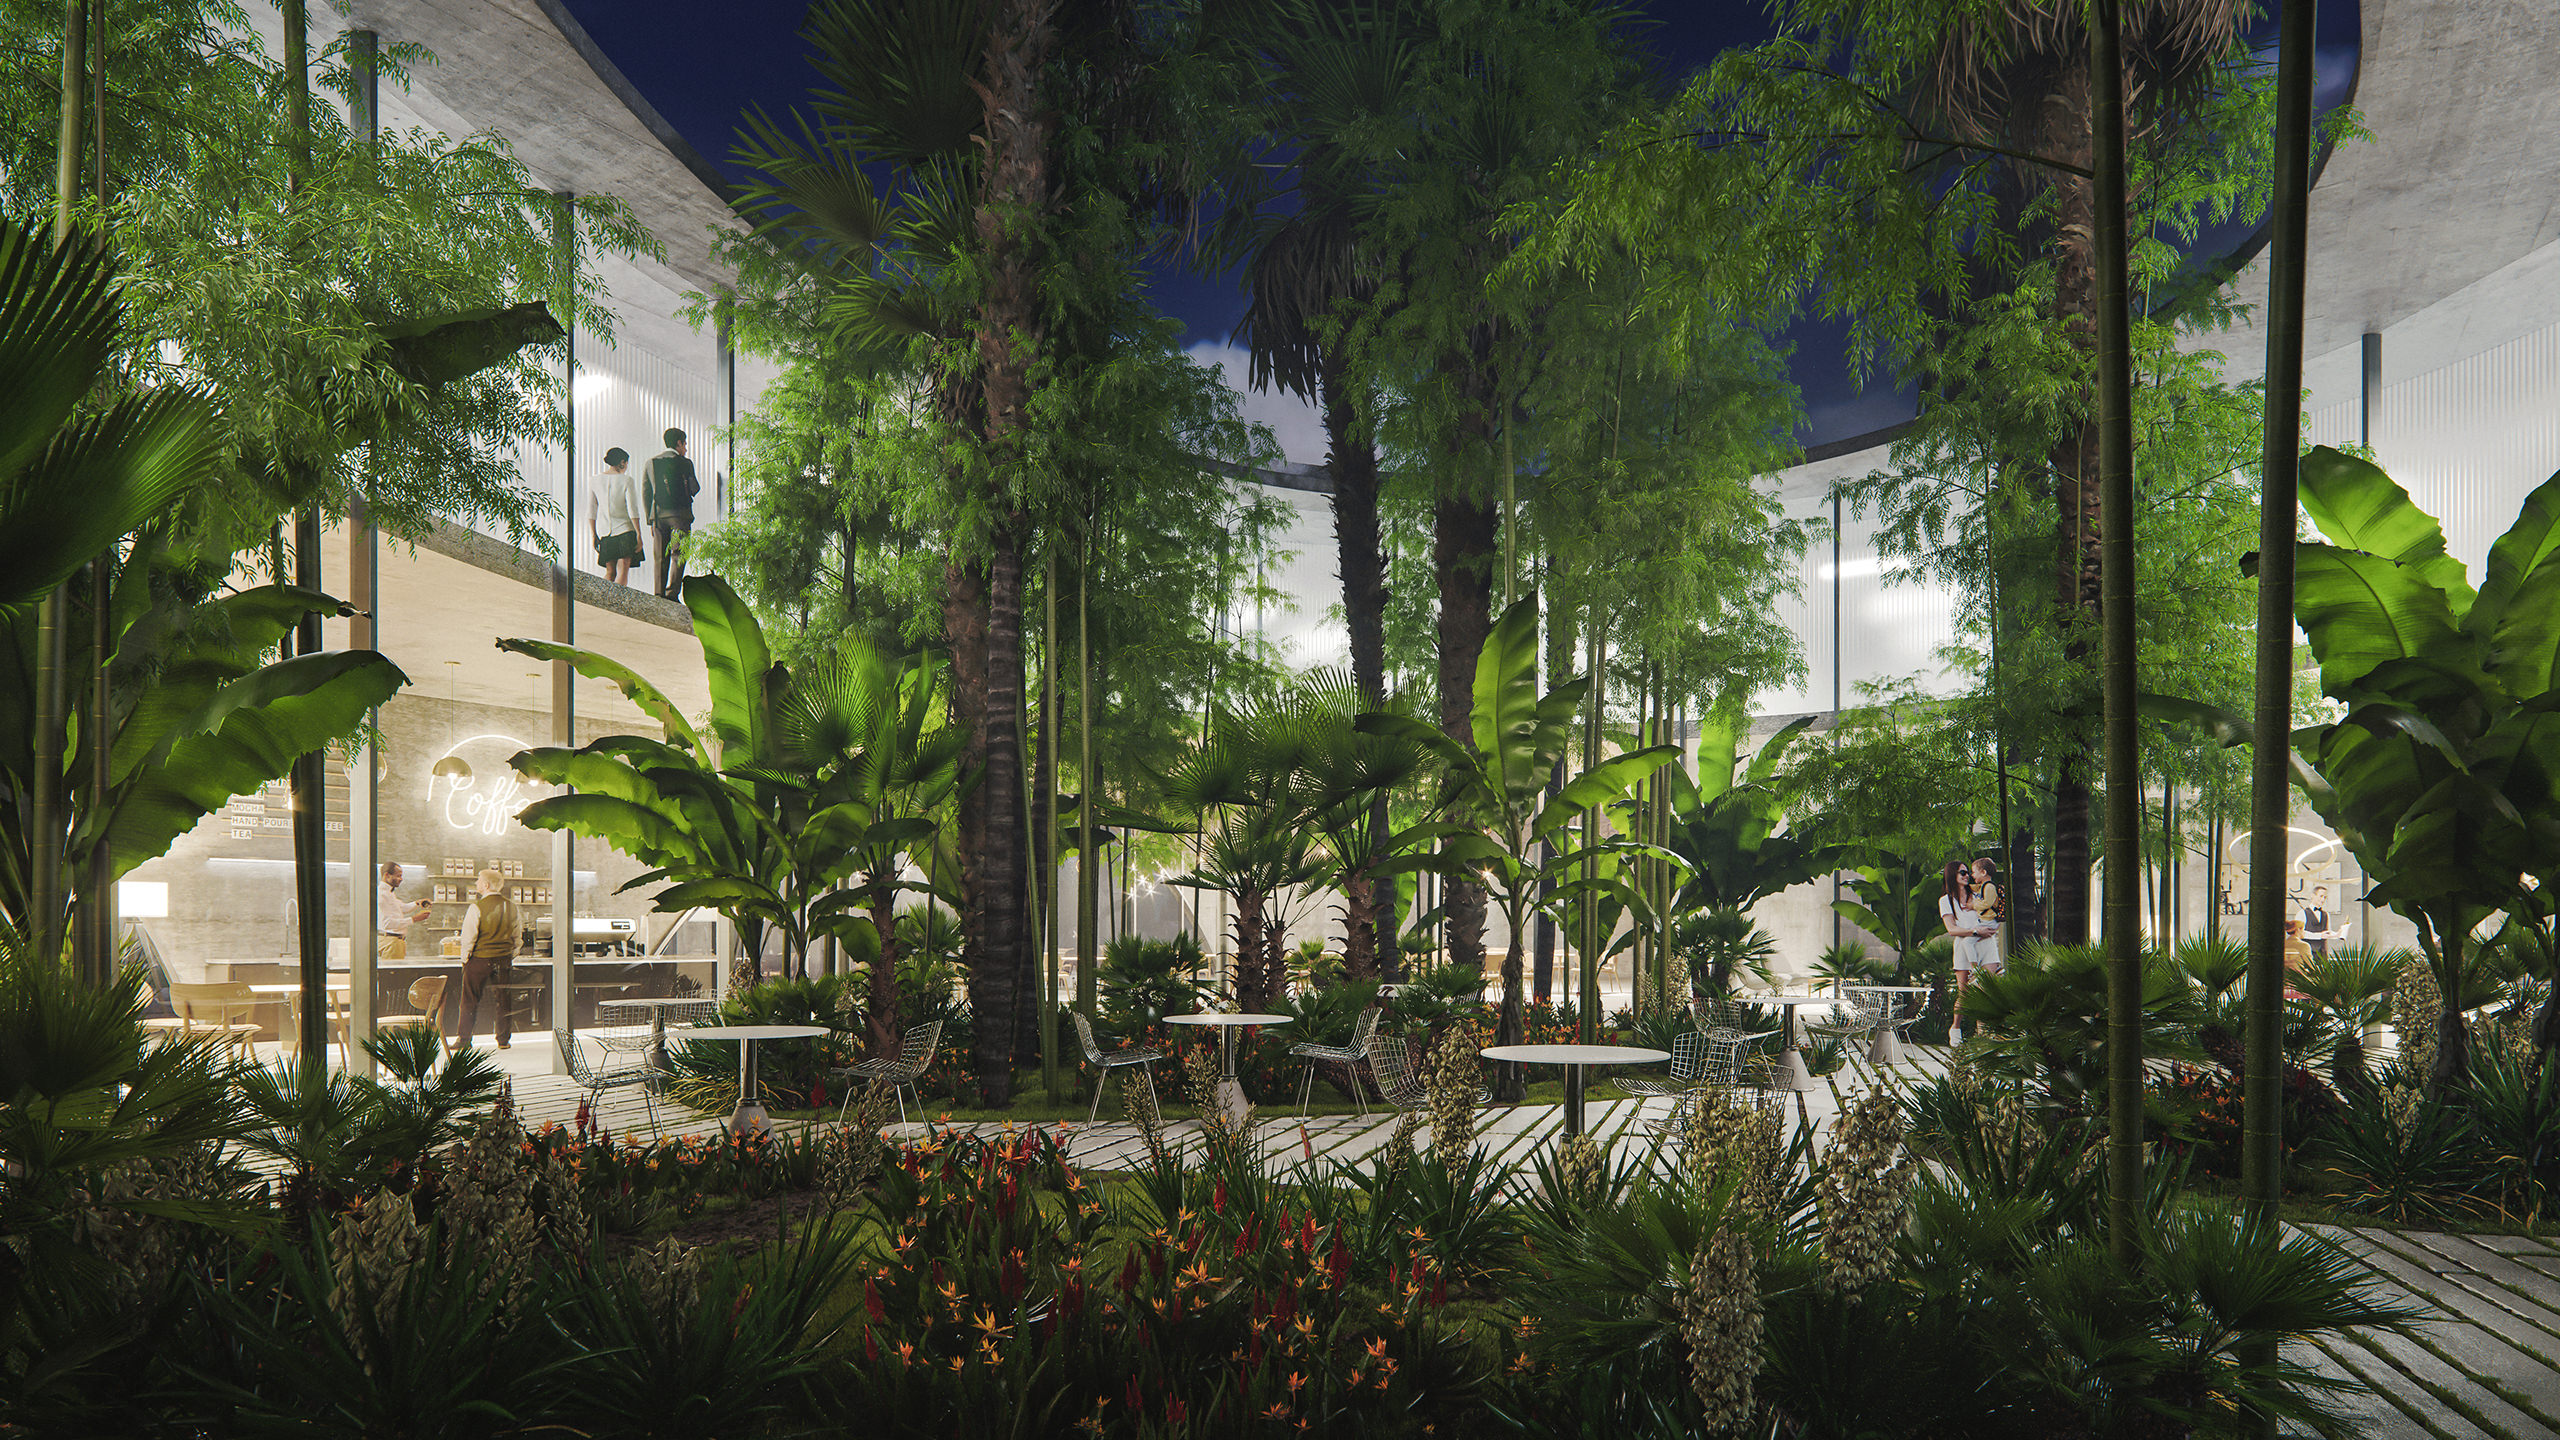 Architectural visualization of a tropical garden with various plant species rendered in a courtyard of a business center at night time